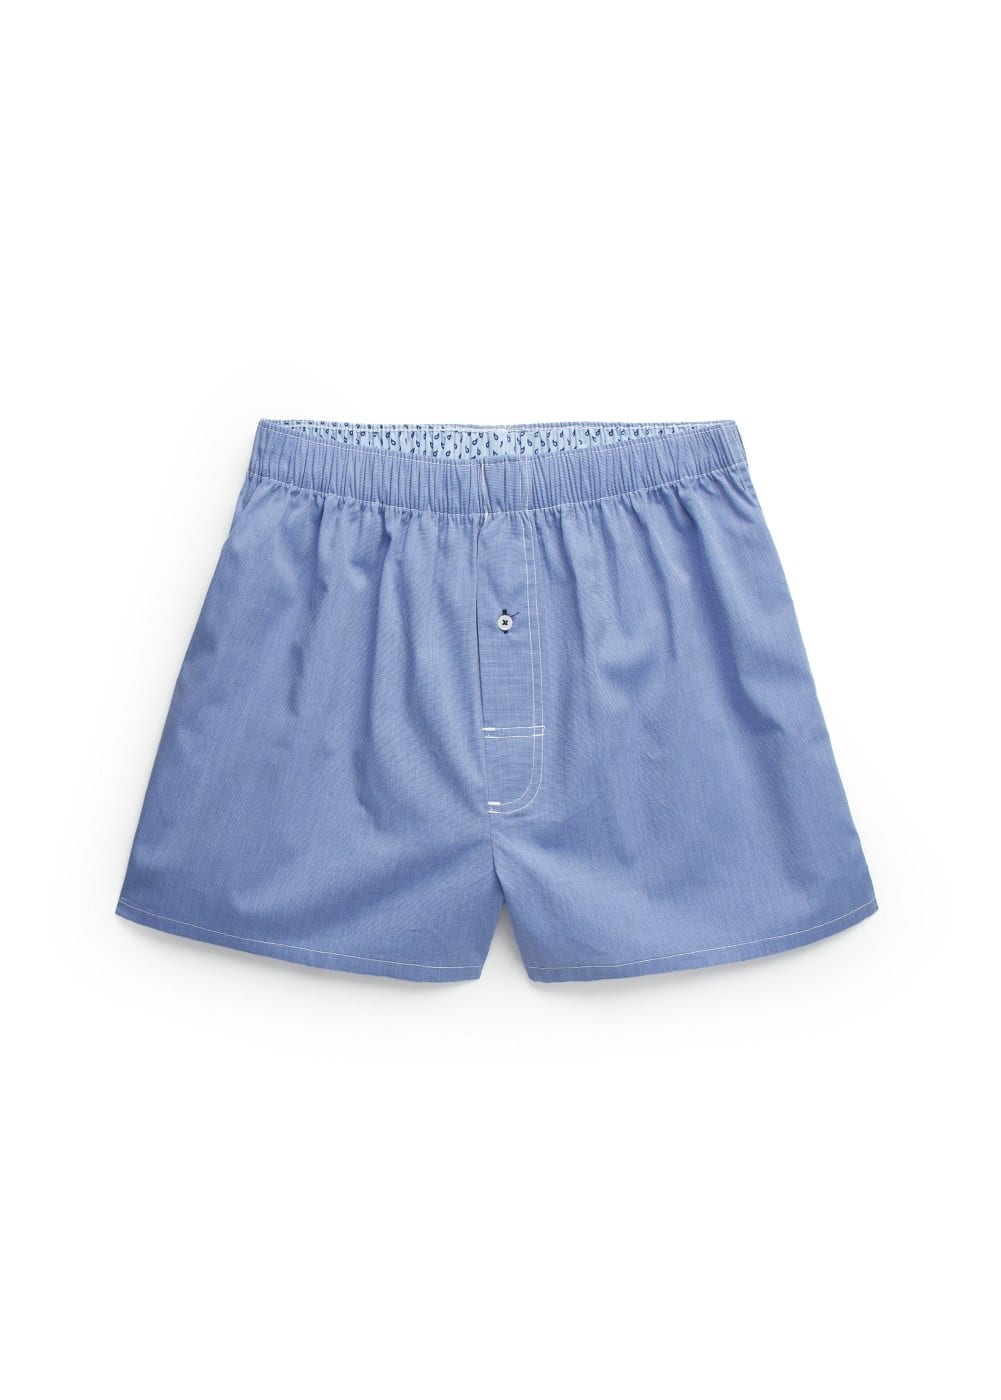 Check cotton boxer shorts